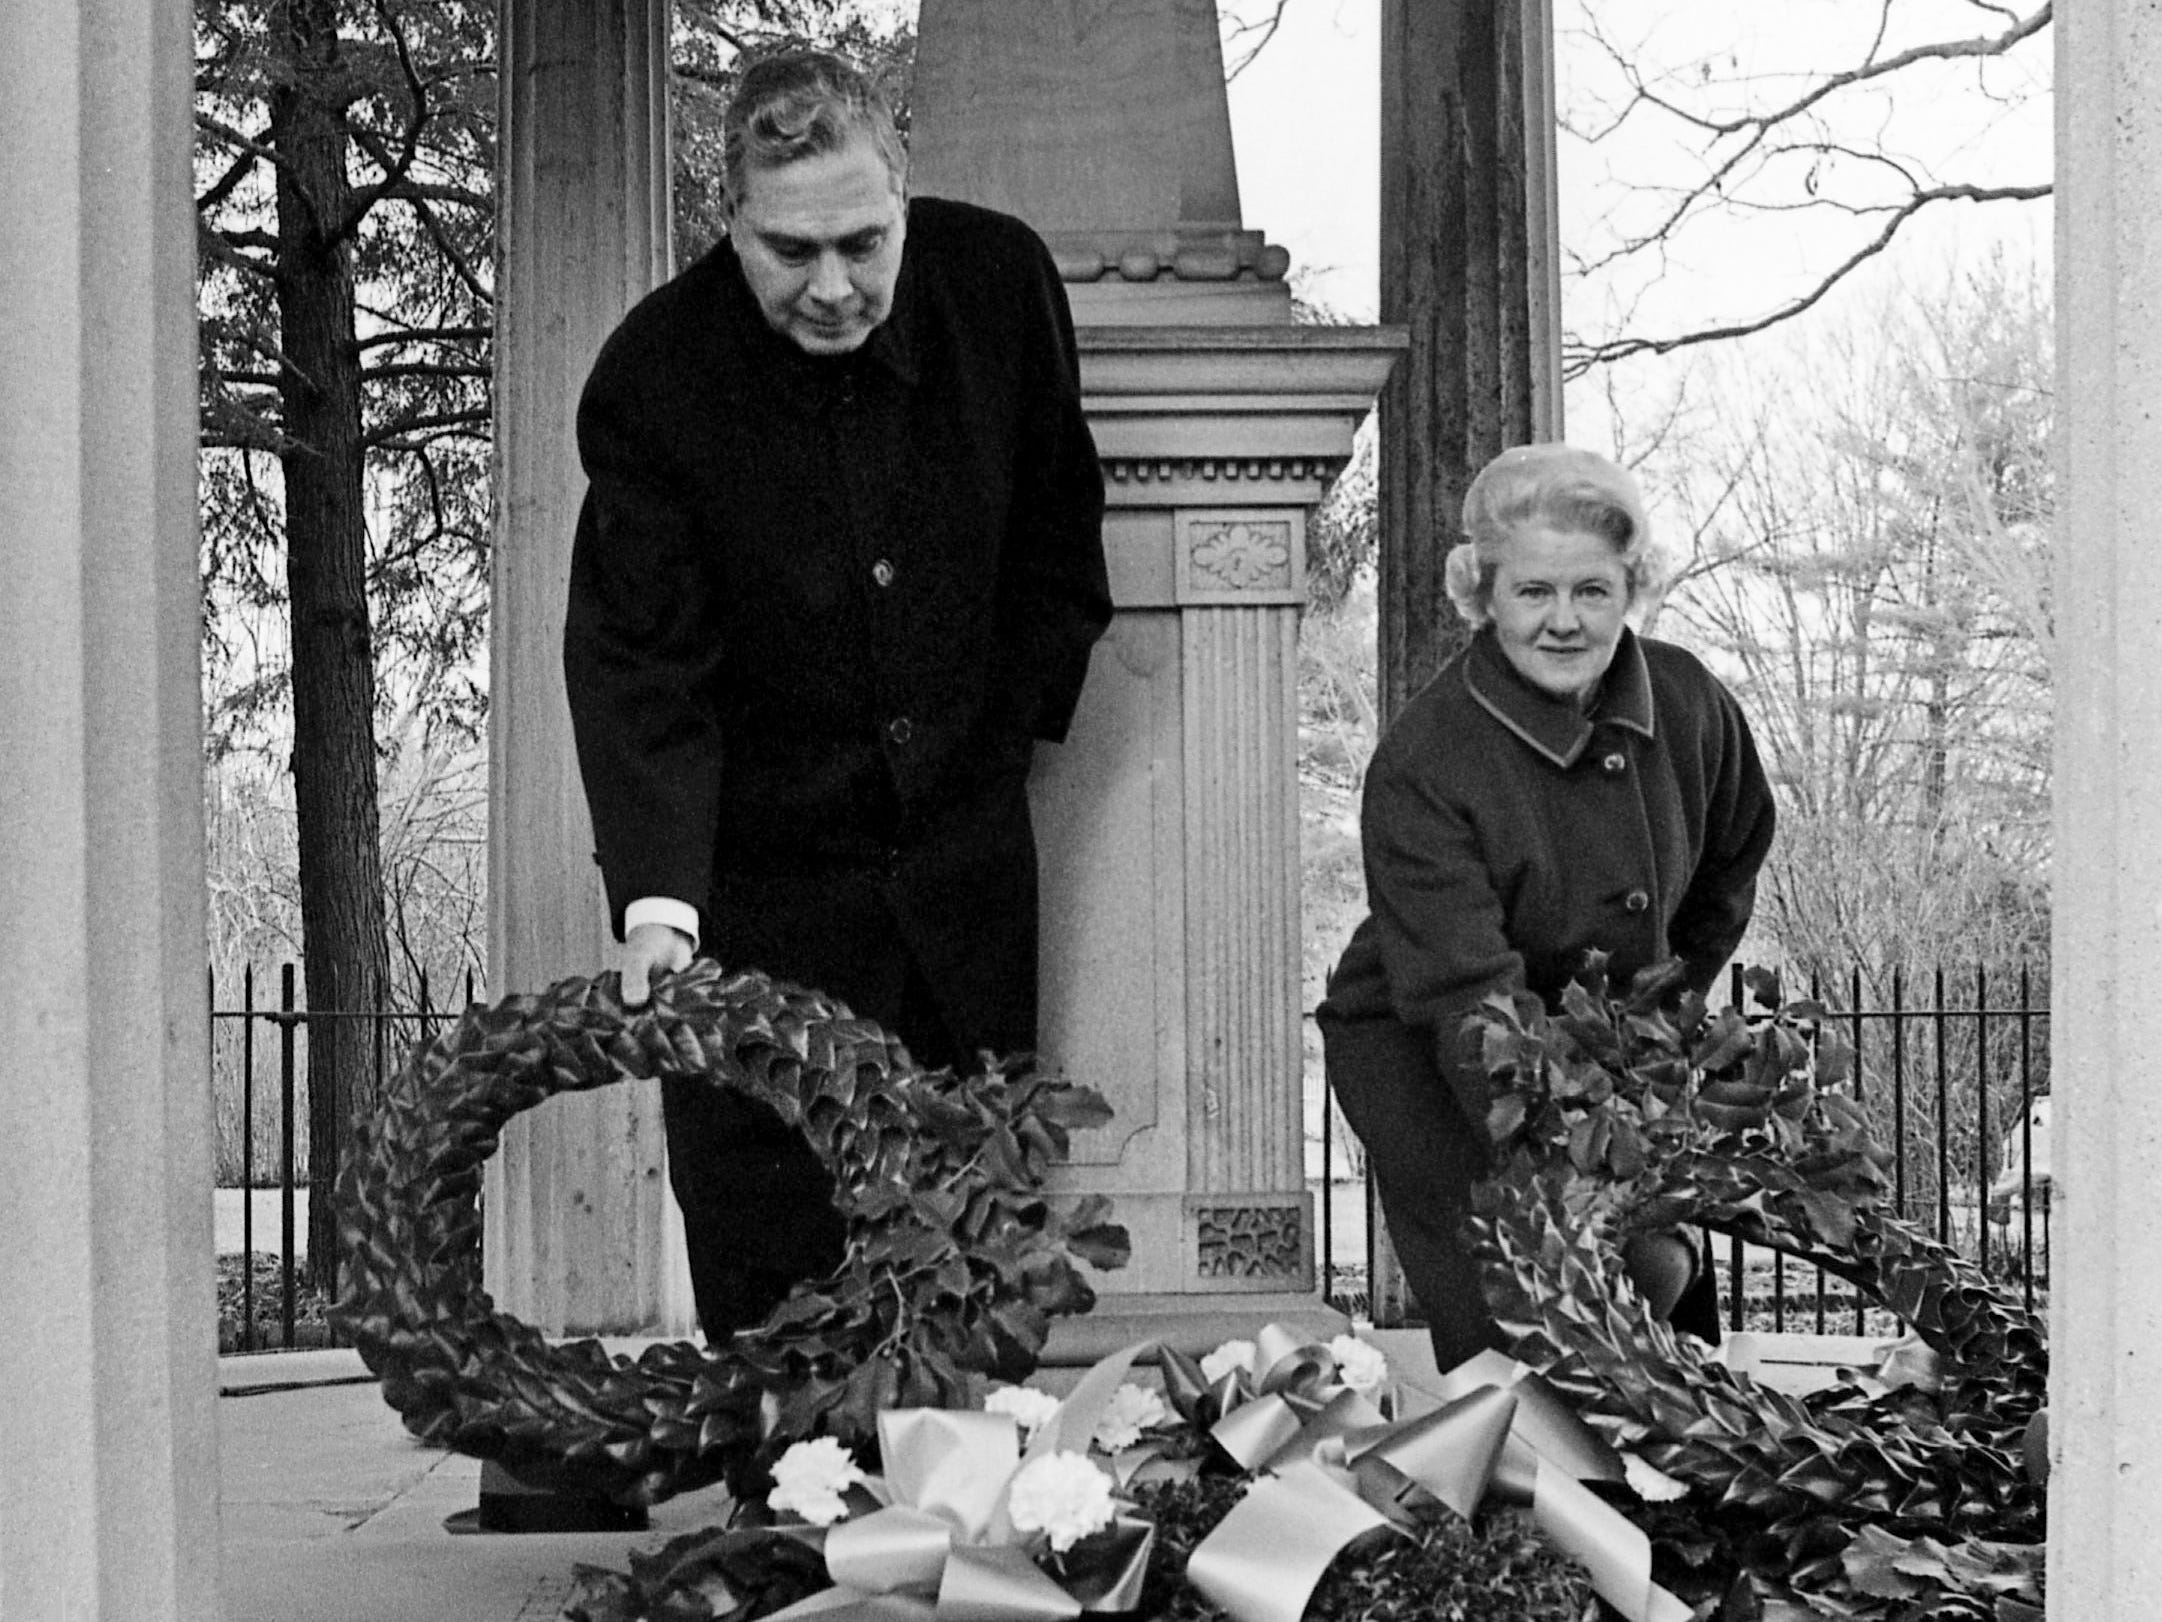 William Waller, left, a member of The Hermitage board of trustees, and Mrs. Horatio B. Buntin, regent of the Ladies Hermitage Association, place wreaths at the graves of President Andrew Jackson and his wife, Rachel, during ceremonies Jan. 8, 1969, commemorating the 154th anniversary of the Battle of New Orleans.